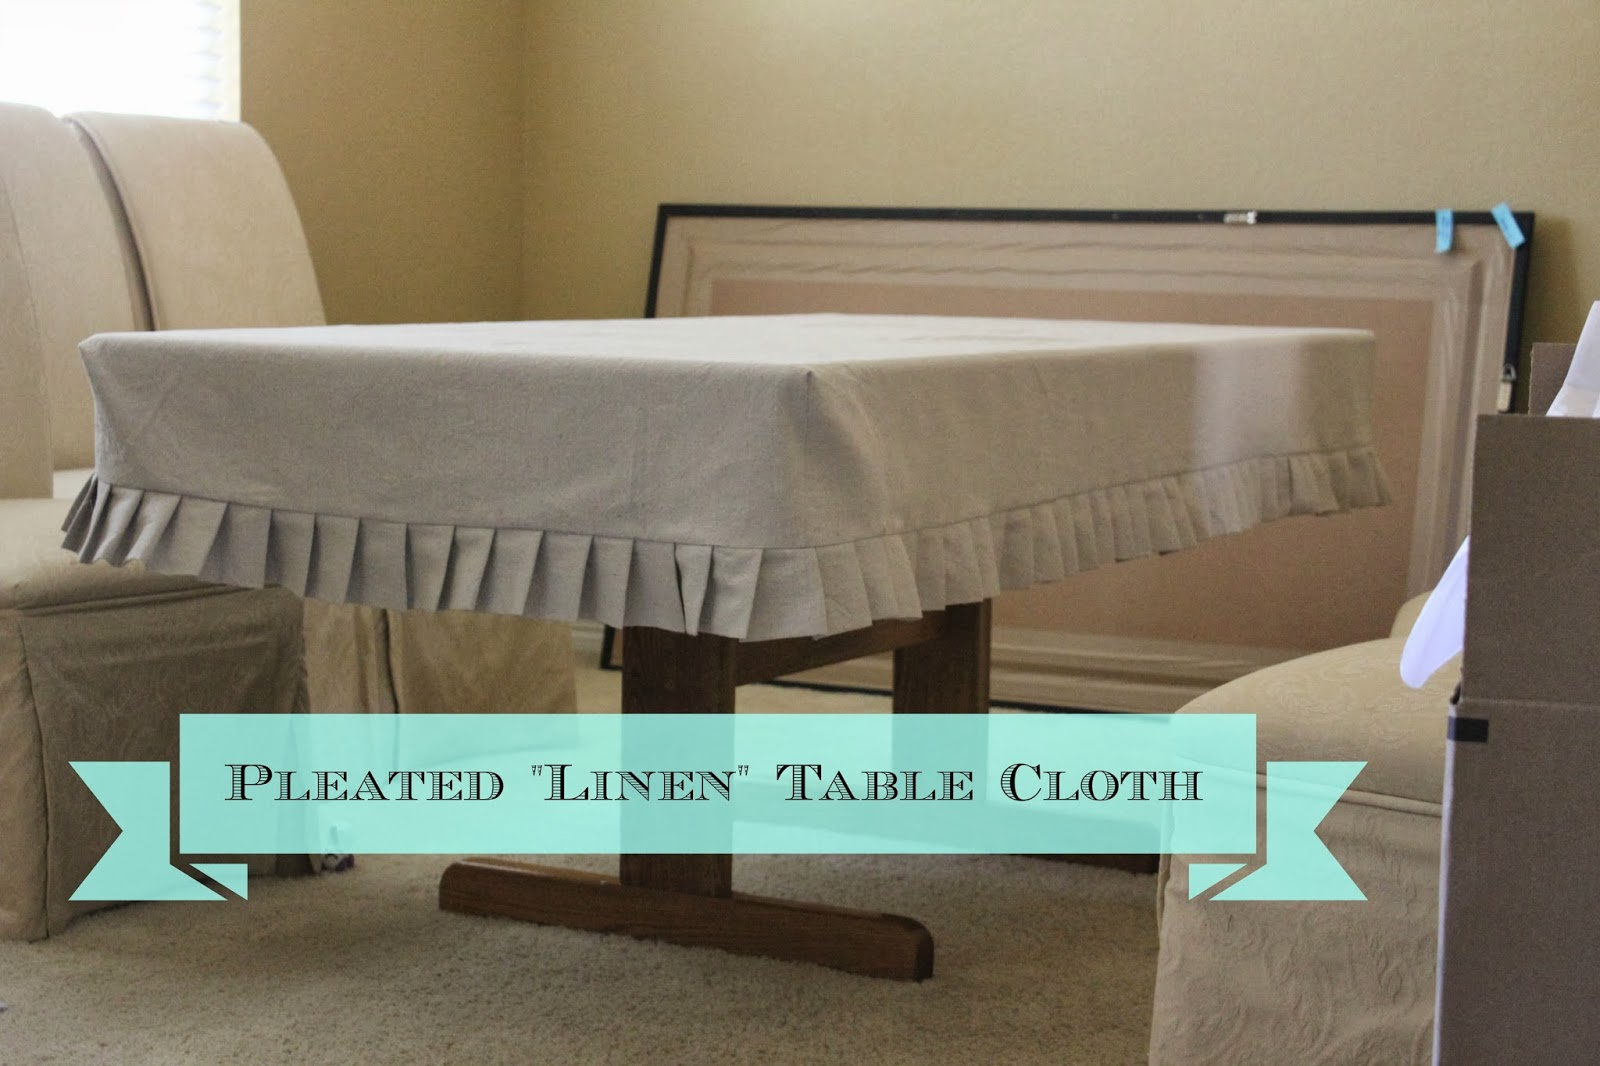 2nd Story Sewing Tutorial Diy Quot Linen Quot Pleated Table Cloth